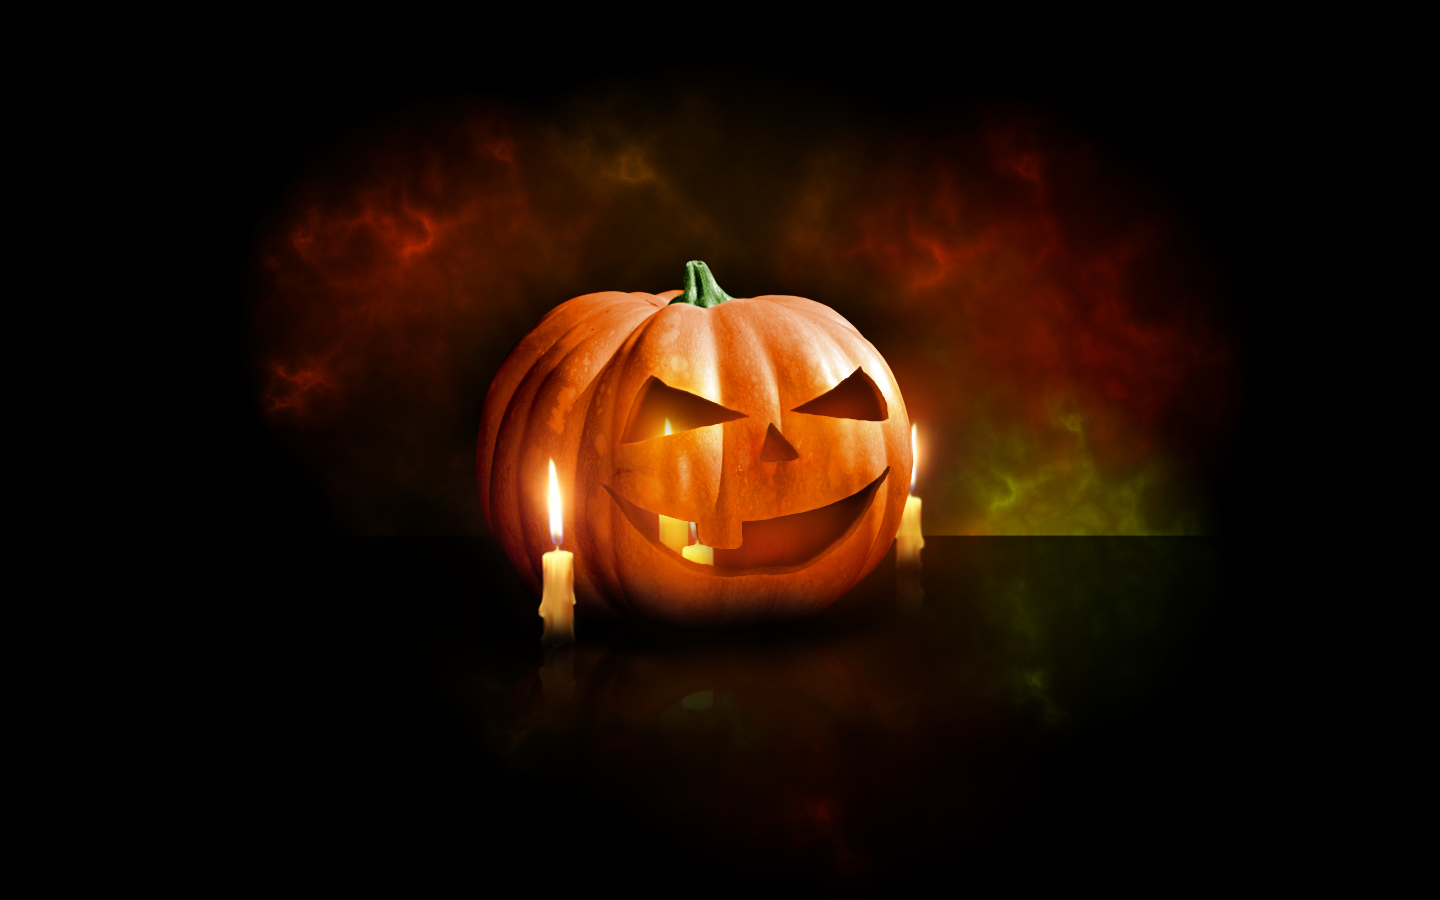 Cool Halloween Wallpapers and Halloween Icons for Download 1440x900